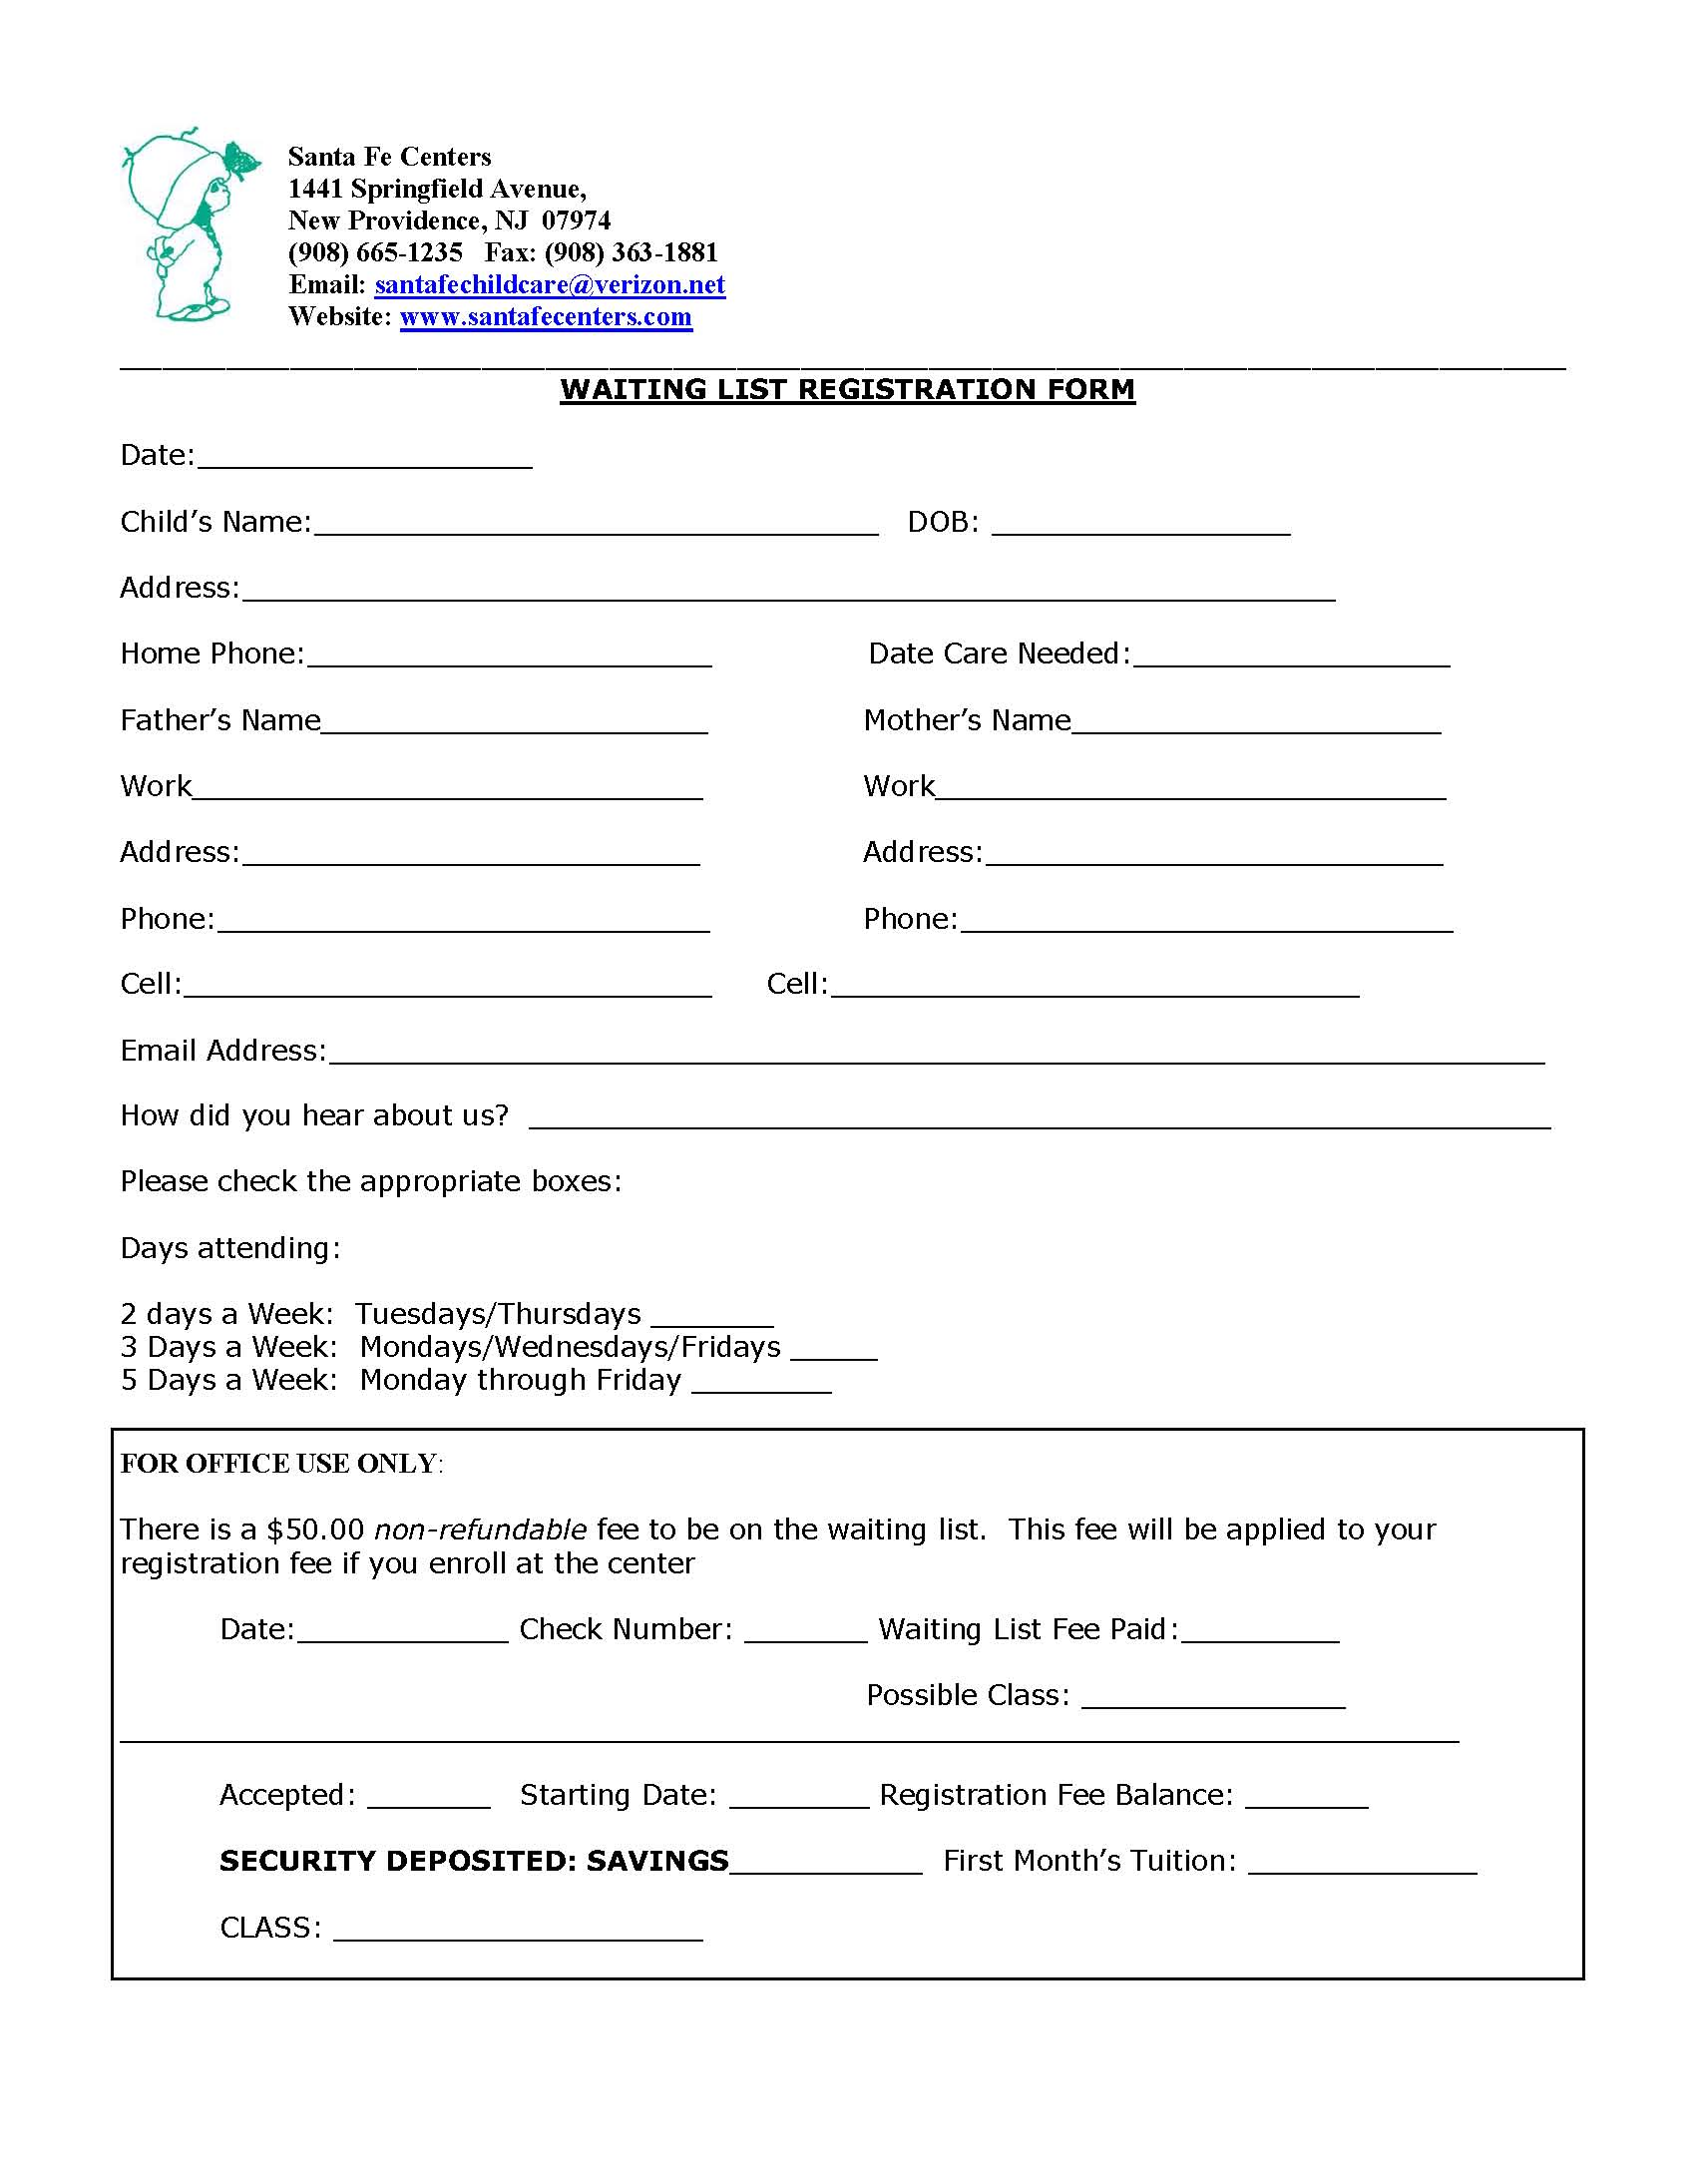 Waitlist Registration Form